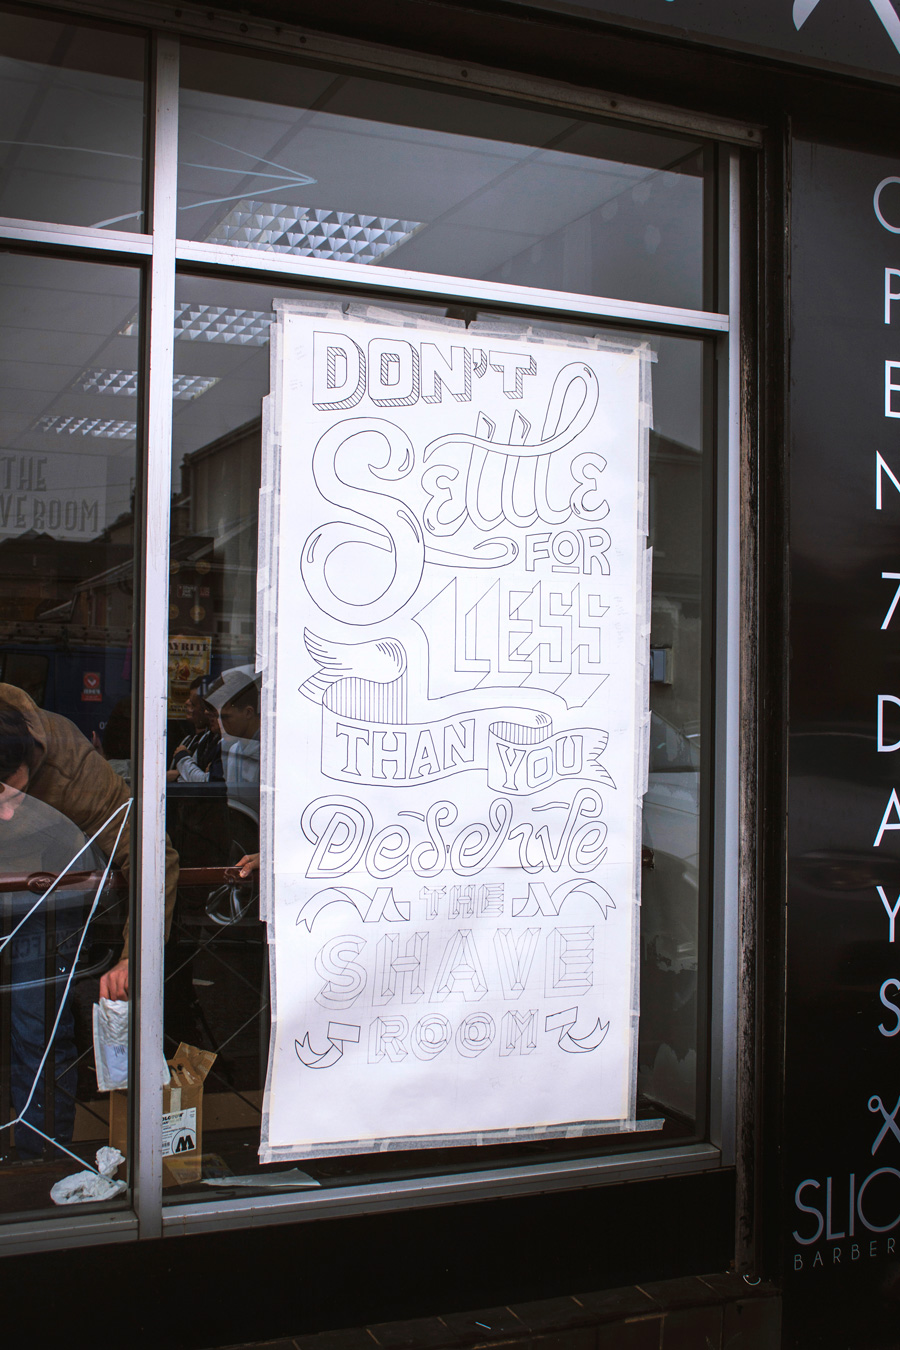 Slick's Barbershop Window lettering